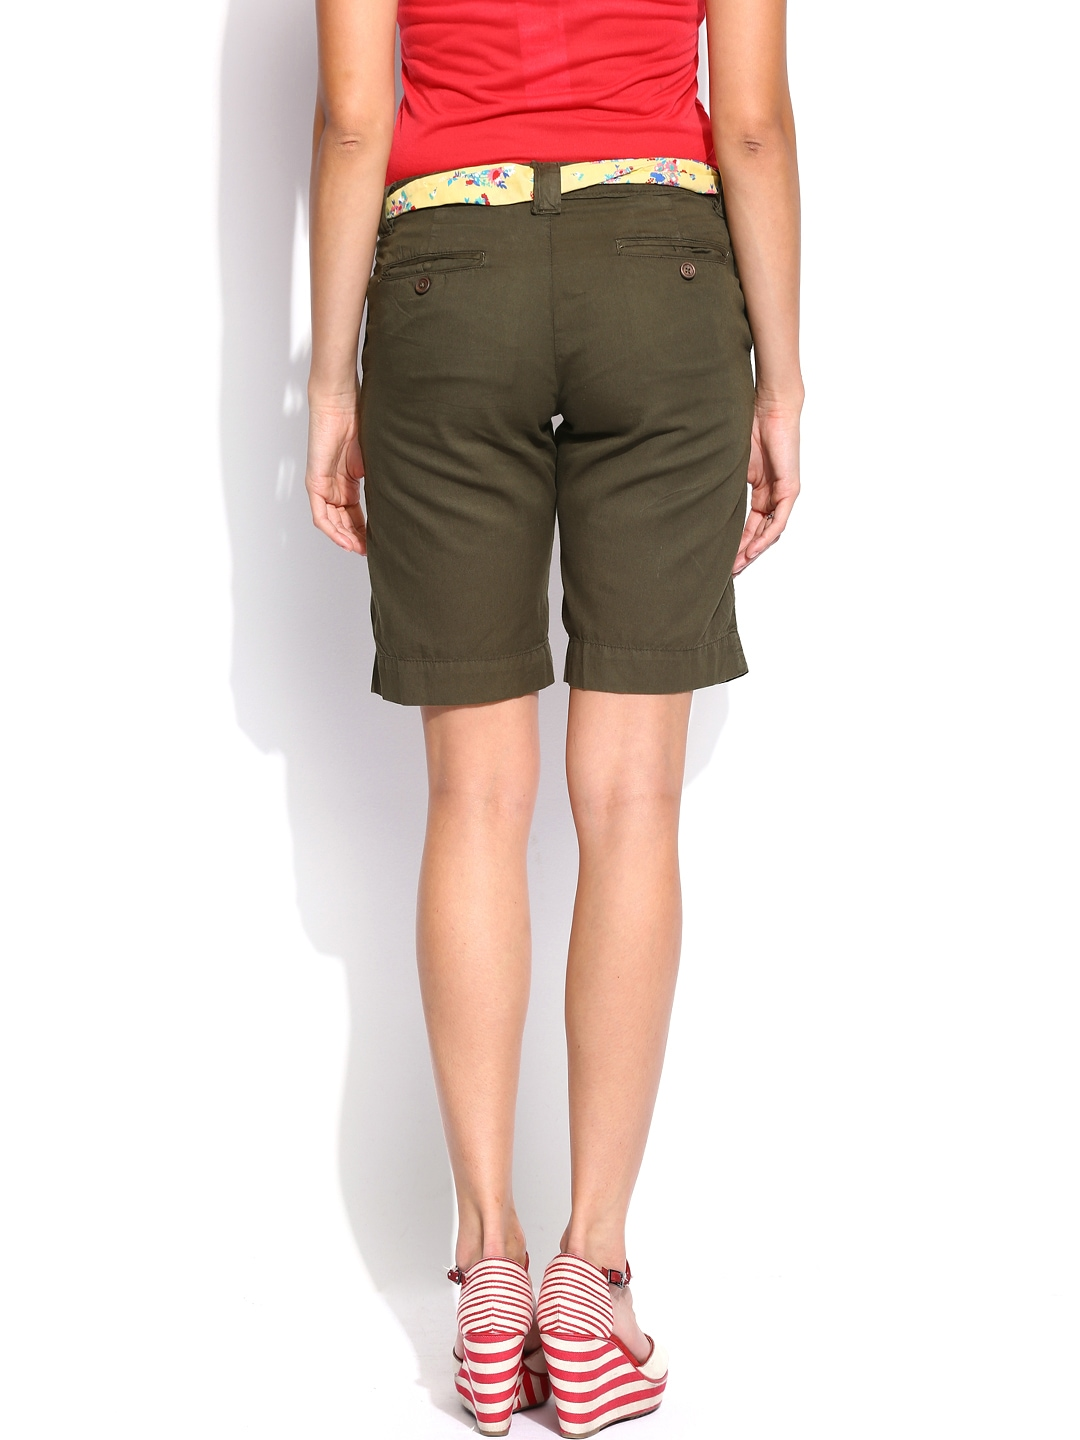 Enjoy free shipping and easy returns every day at Kohl's. Find great deals on Womens Green Shorts at Kohl's today!